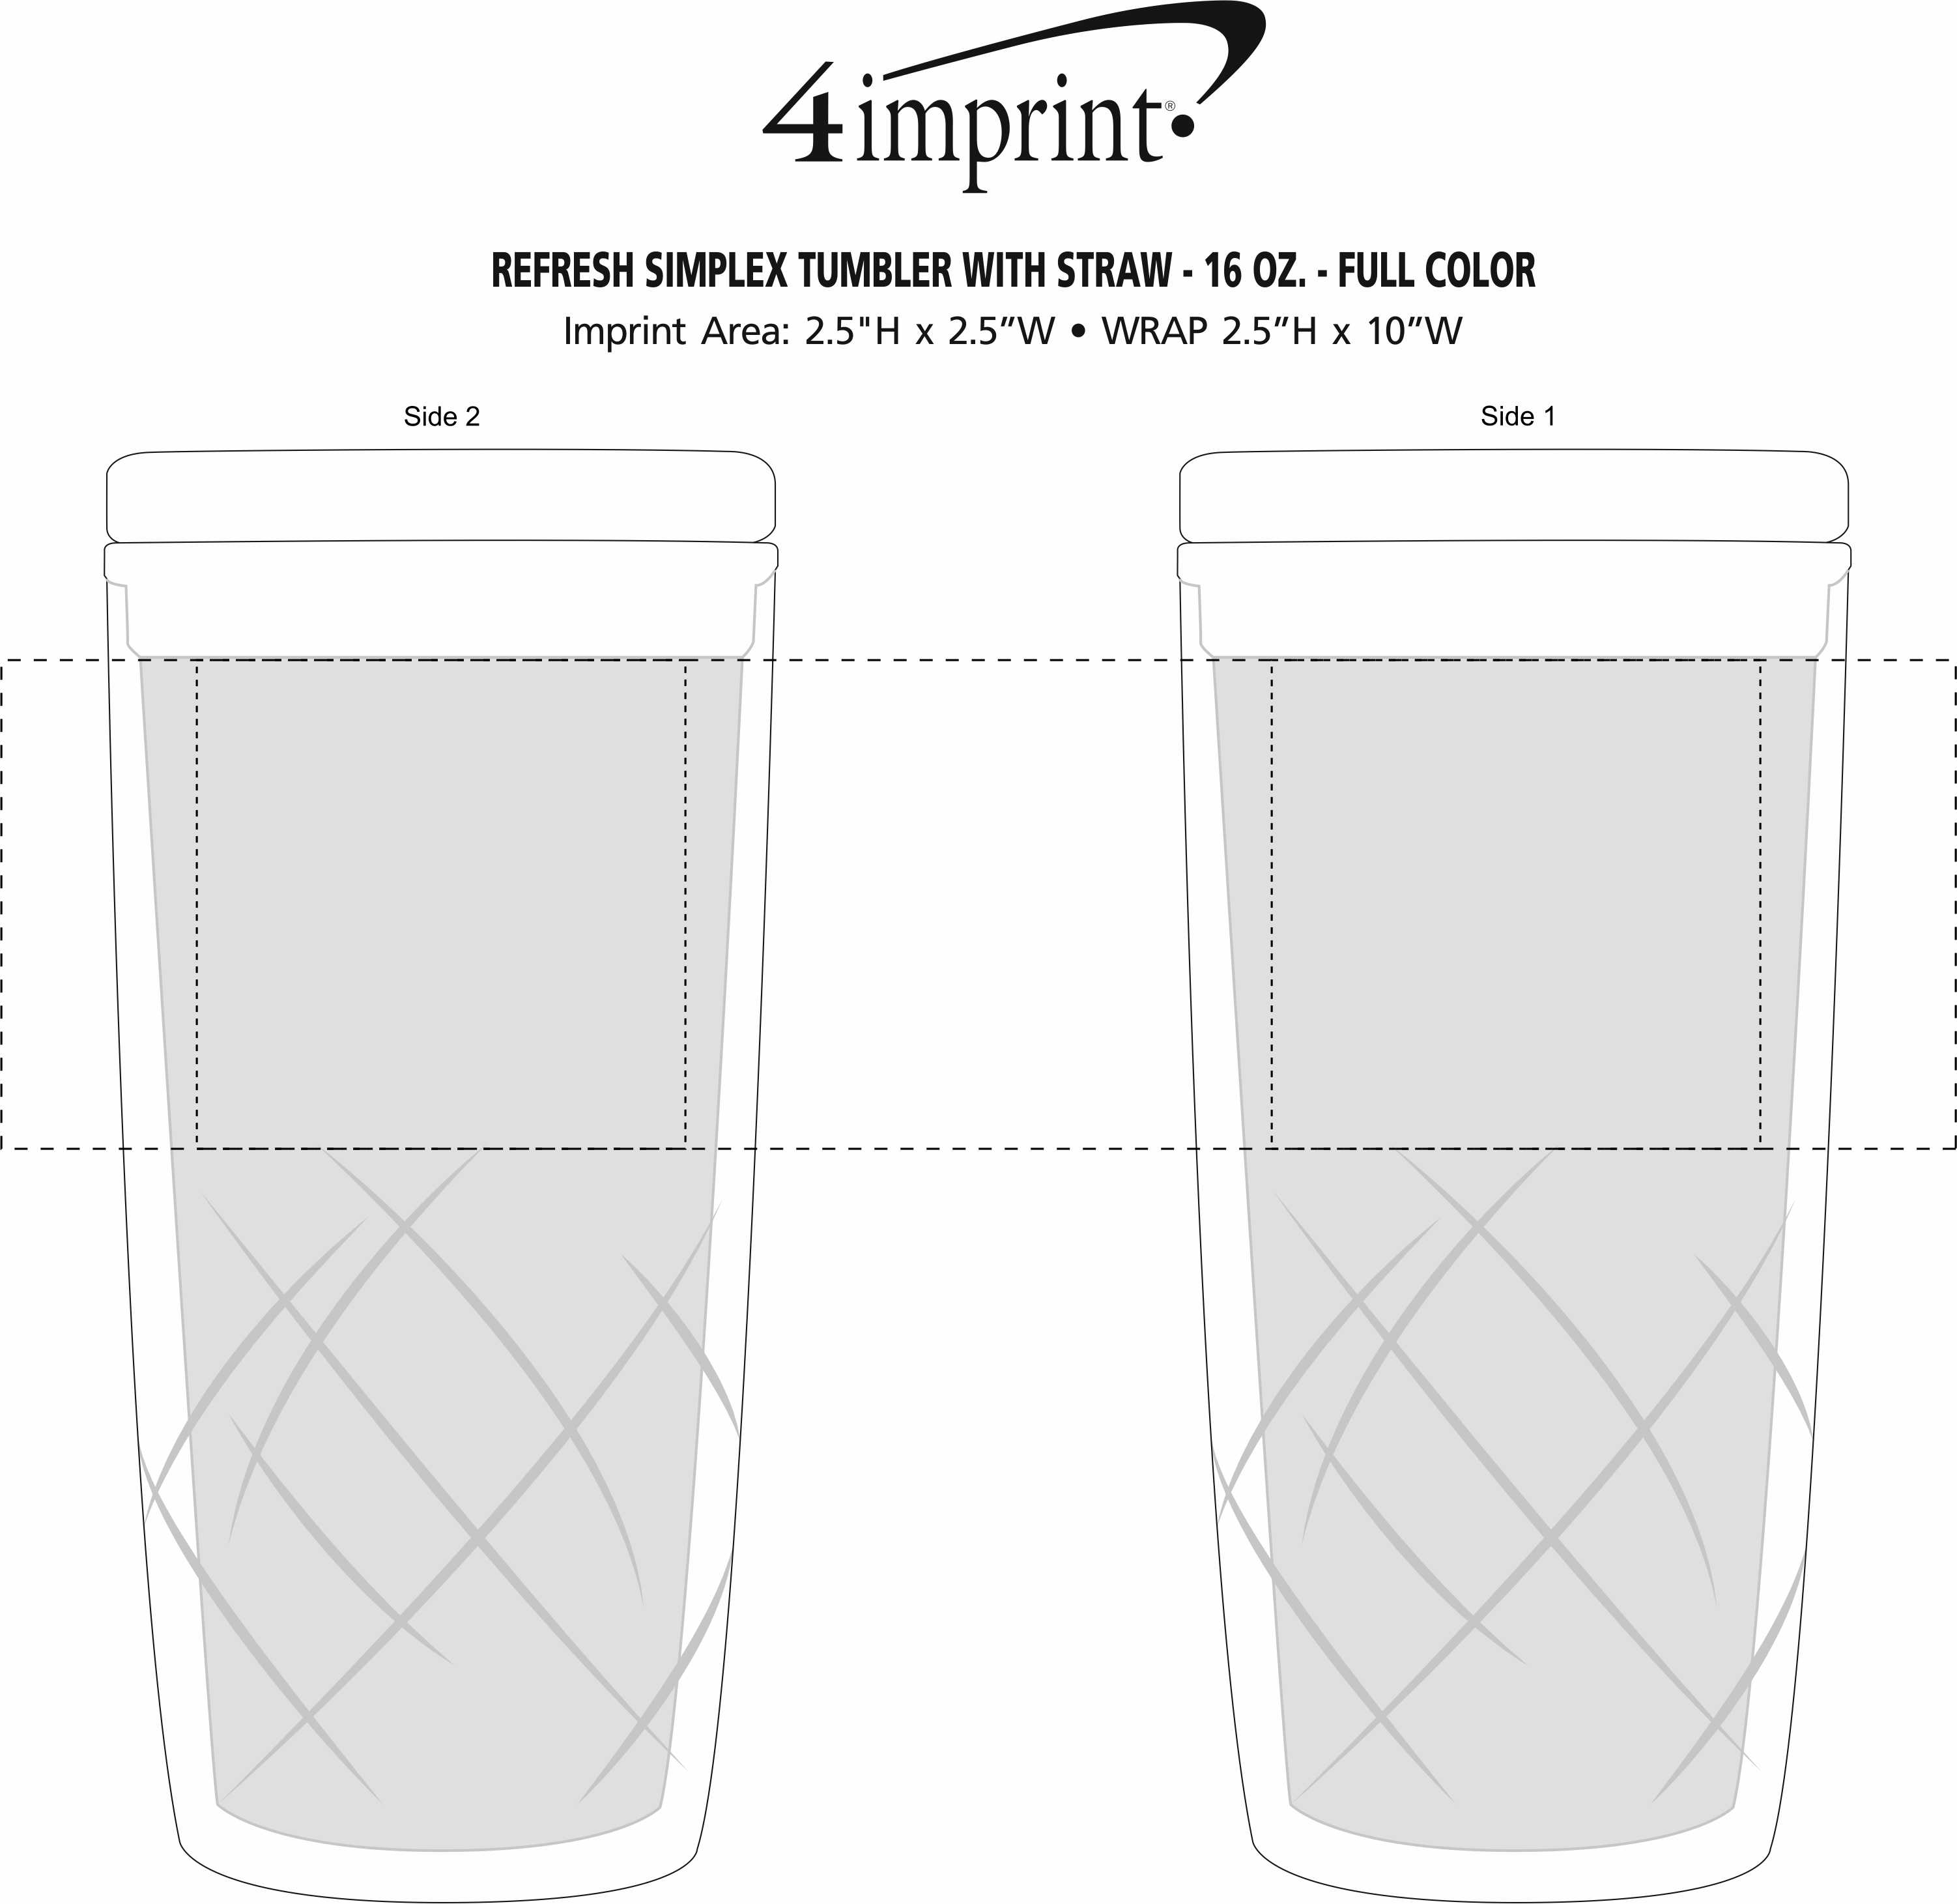 Imprint Area of Refresh Simplex Tumbler with Straw - 16 oz. - Full Color